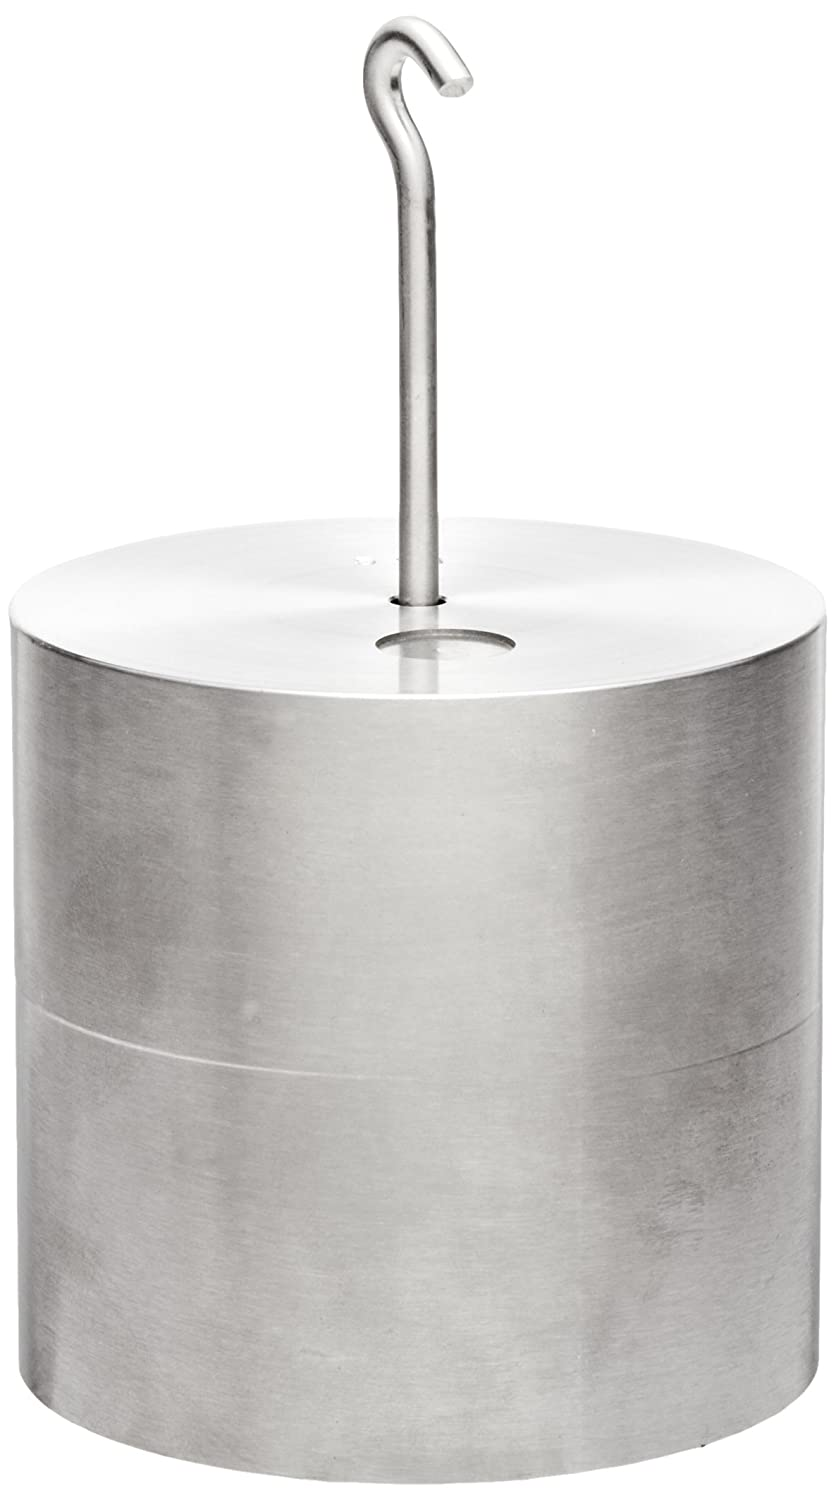 Rice Lake Stainless Steel ASTM Class 6 Hook Metric Individual Test Weight 5kg Mass